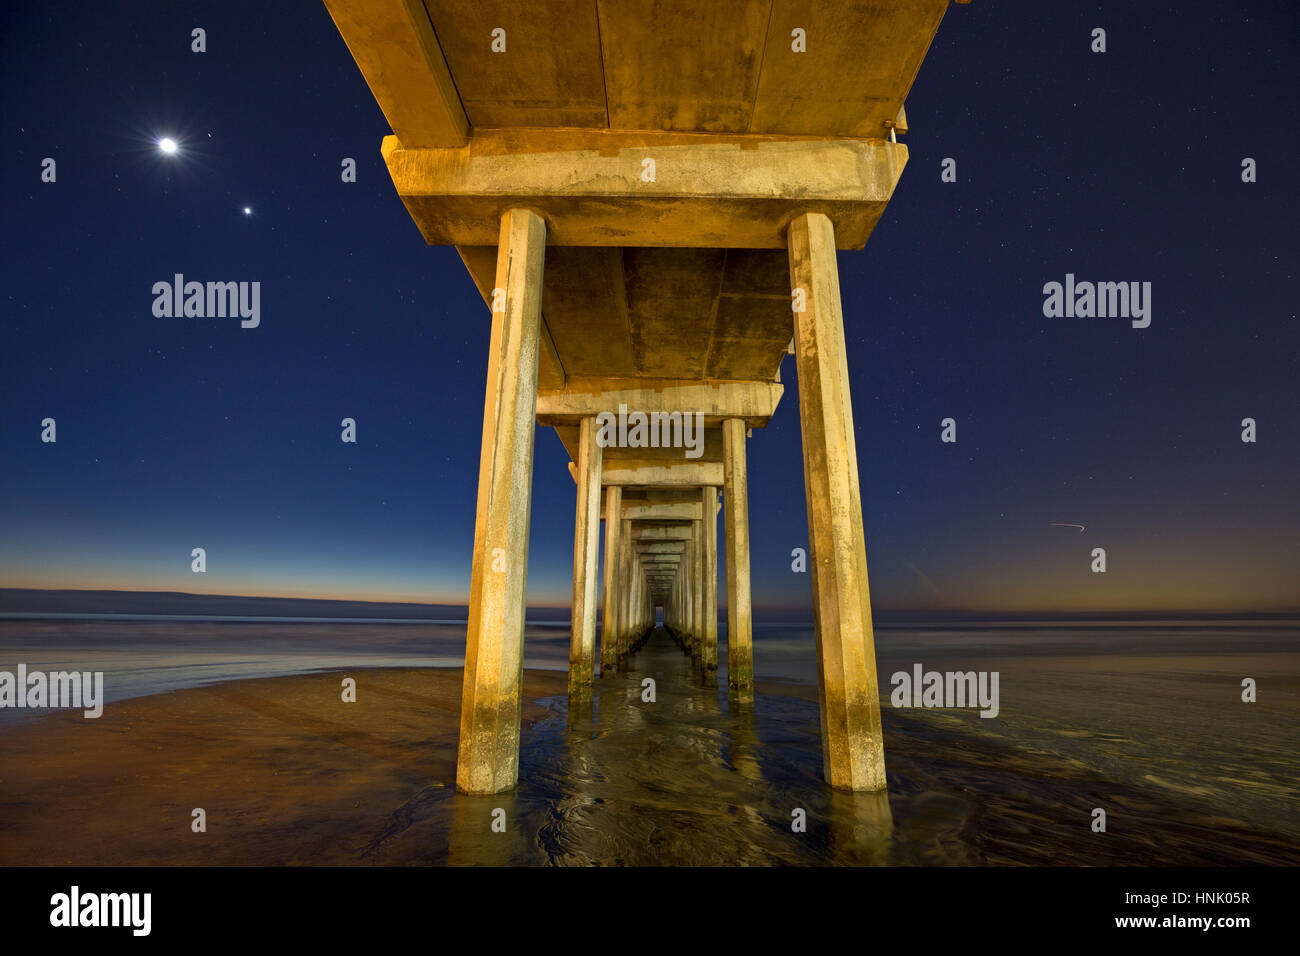 Scripps Institute of Oceanography Pier and the Stellar triangle formed by the Moon, Venus, and Mars, La Jolla, California - Stock Image